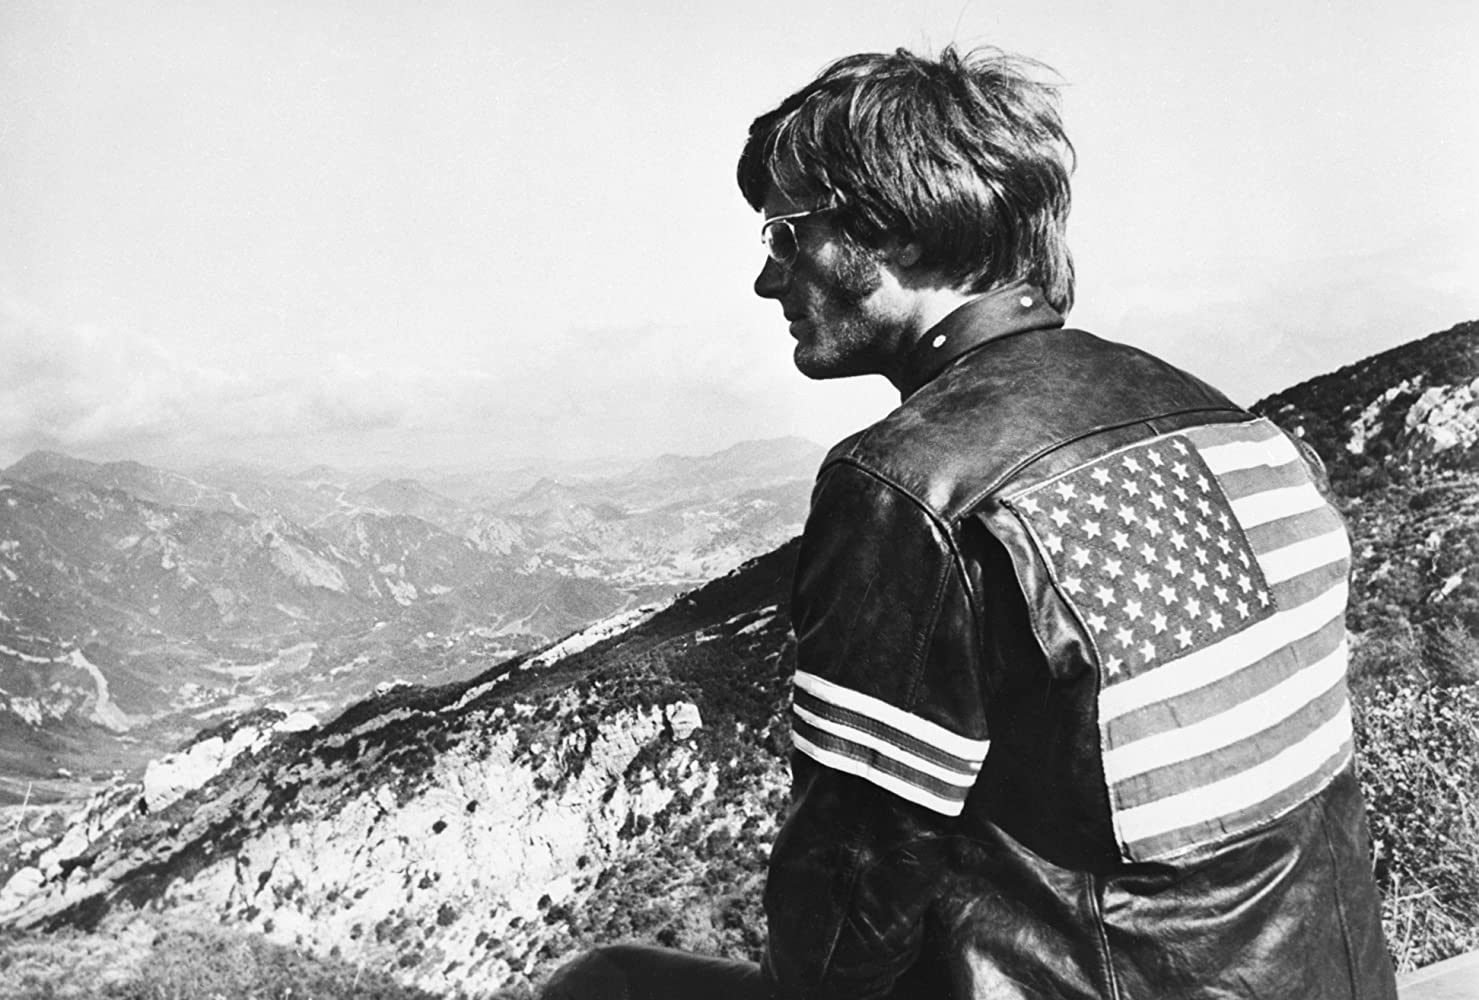 Peter Fonda in Easy Rider (1969)